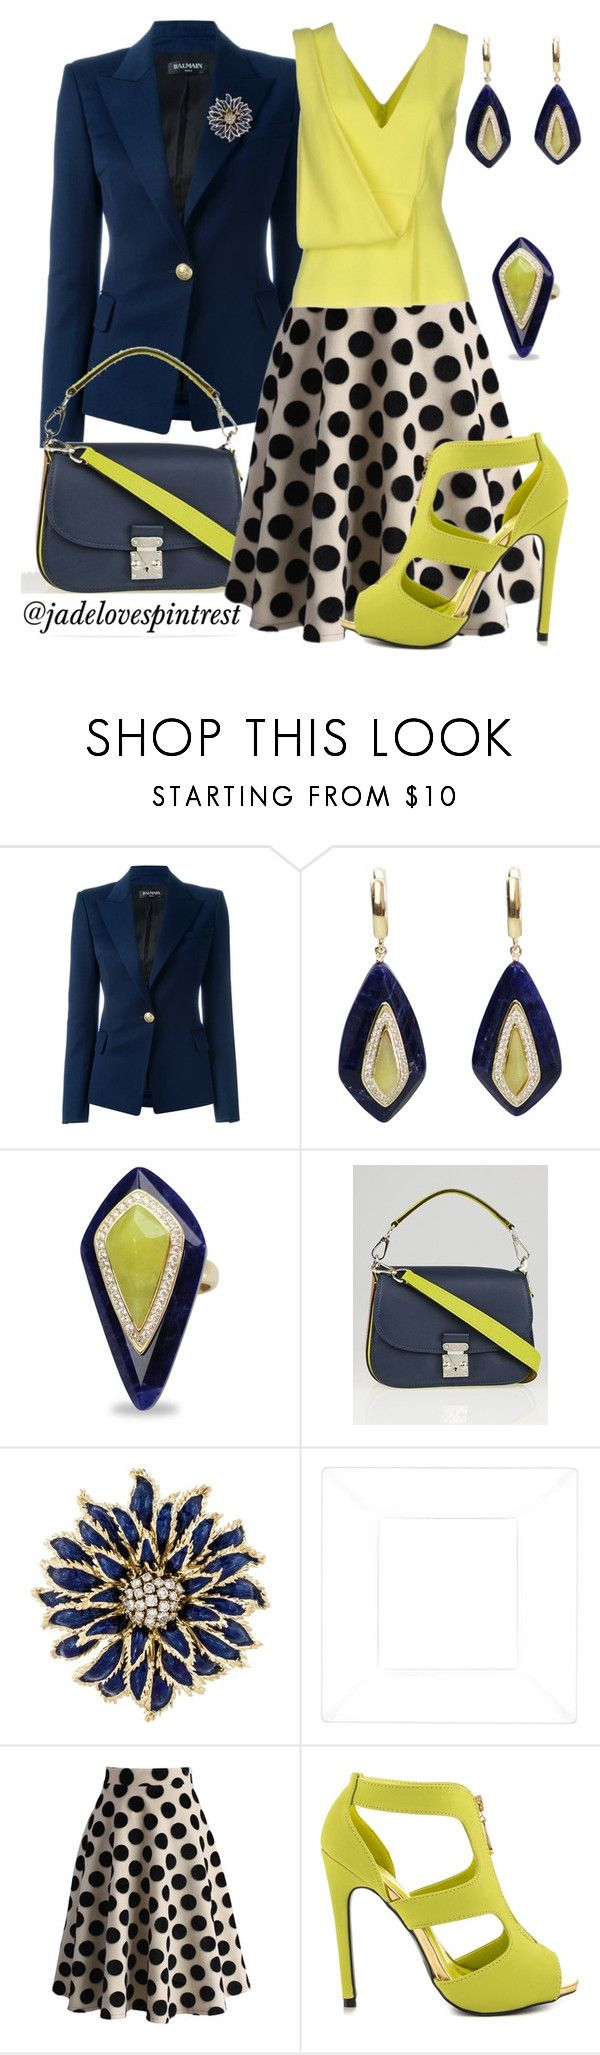 """""""Lime light"""" by jadelovespintrest ❤ liked on Polyvore featuring Balmain, Louis Vuitton, Tiffany & Co., Chicwish, Qupid and Christopher Kane"""